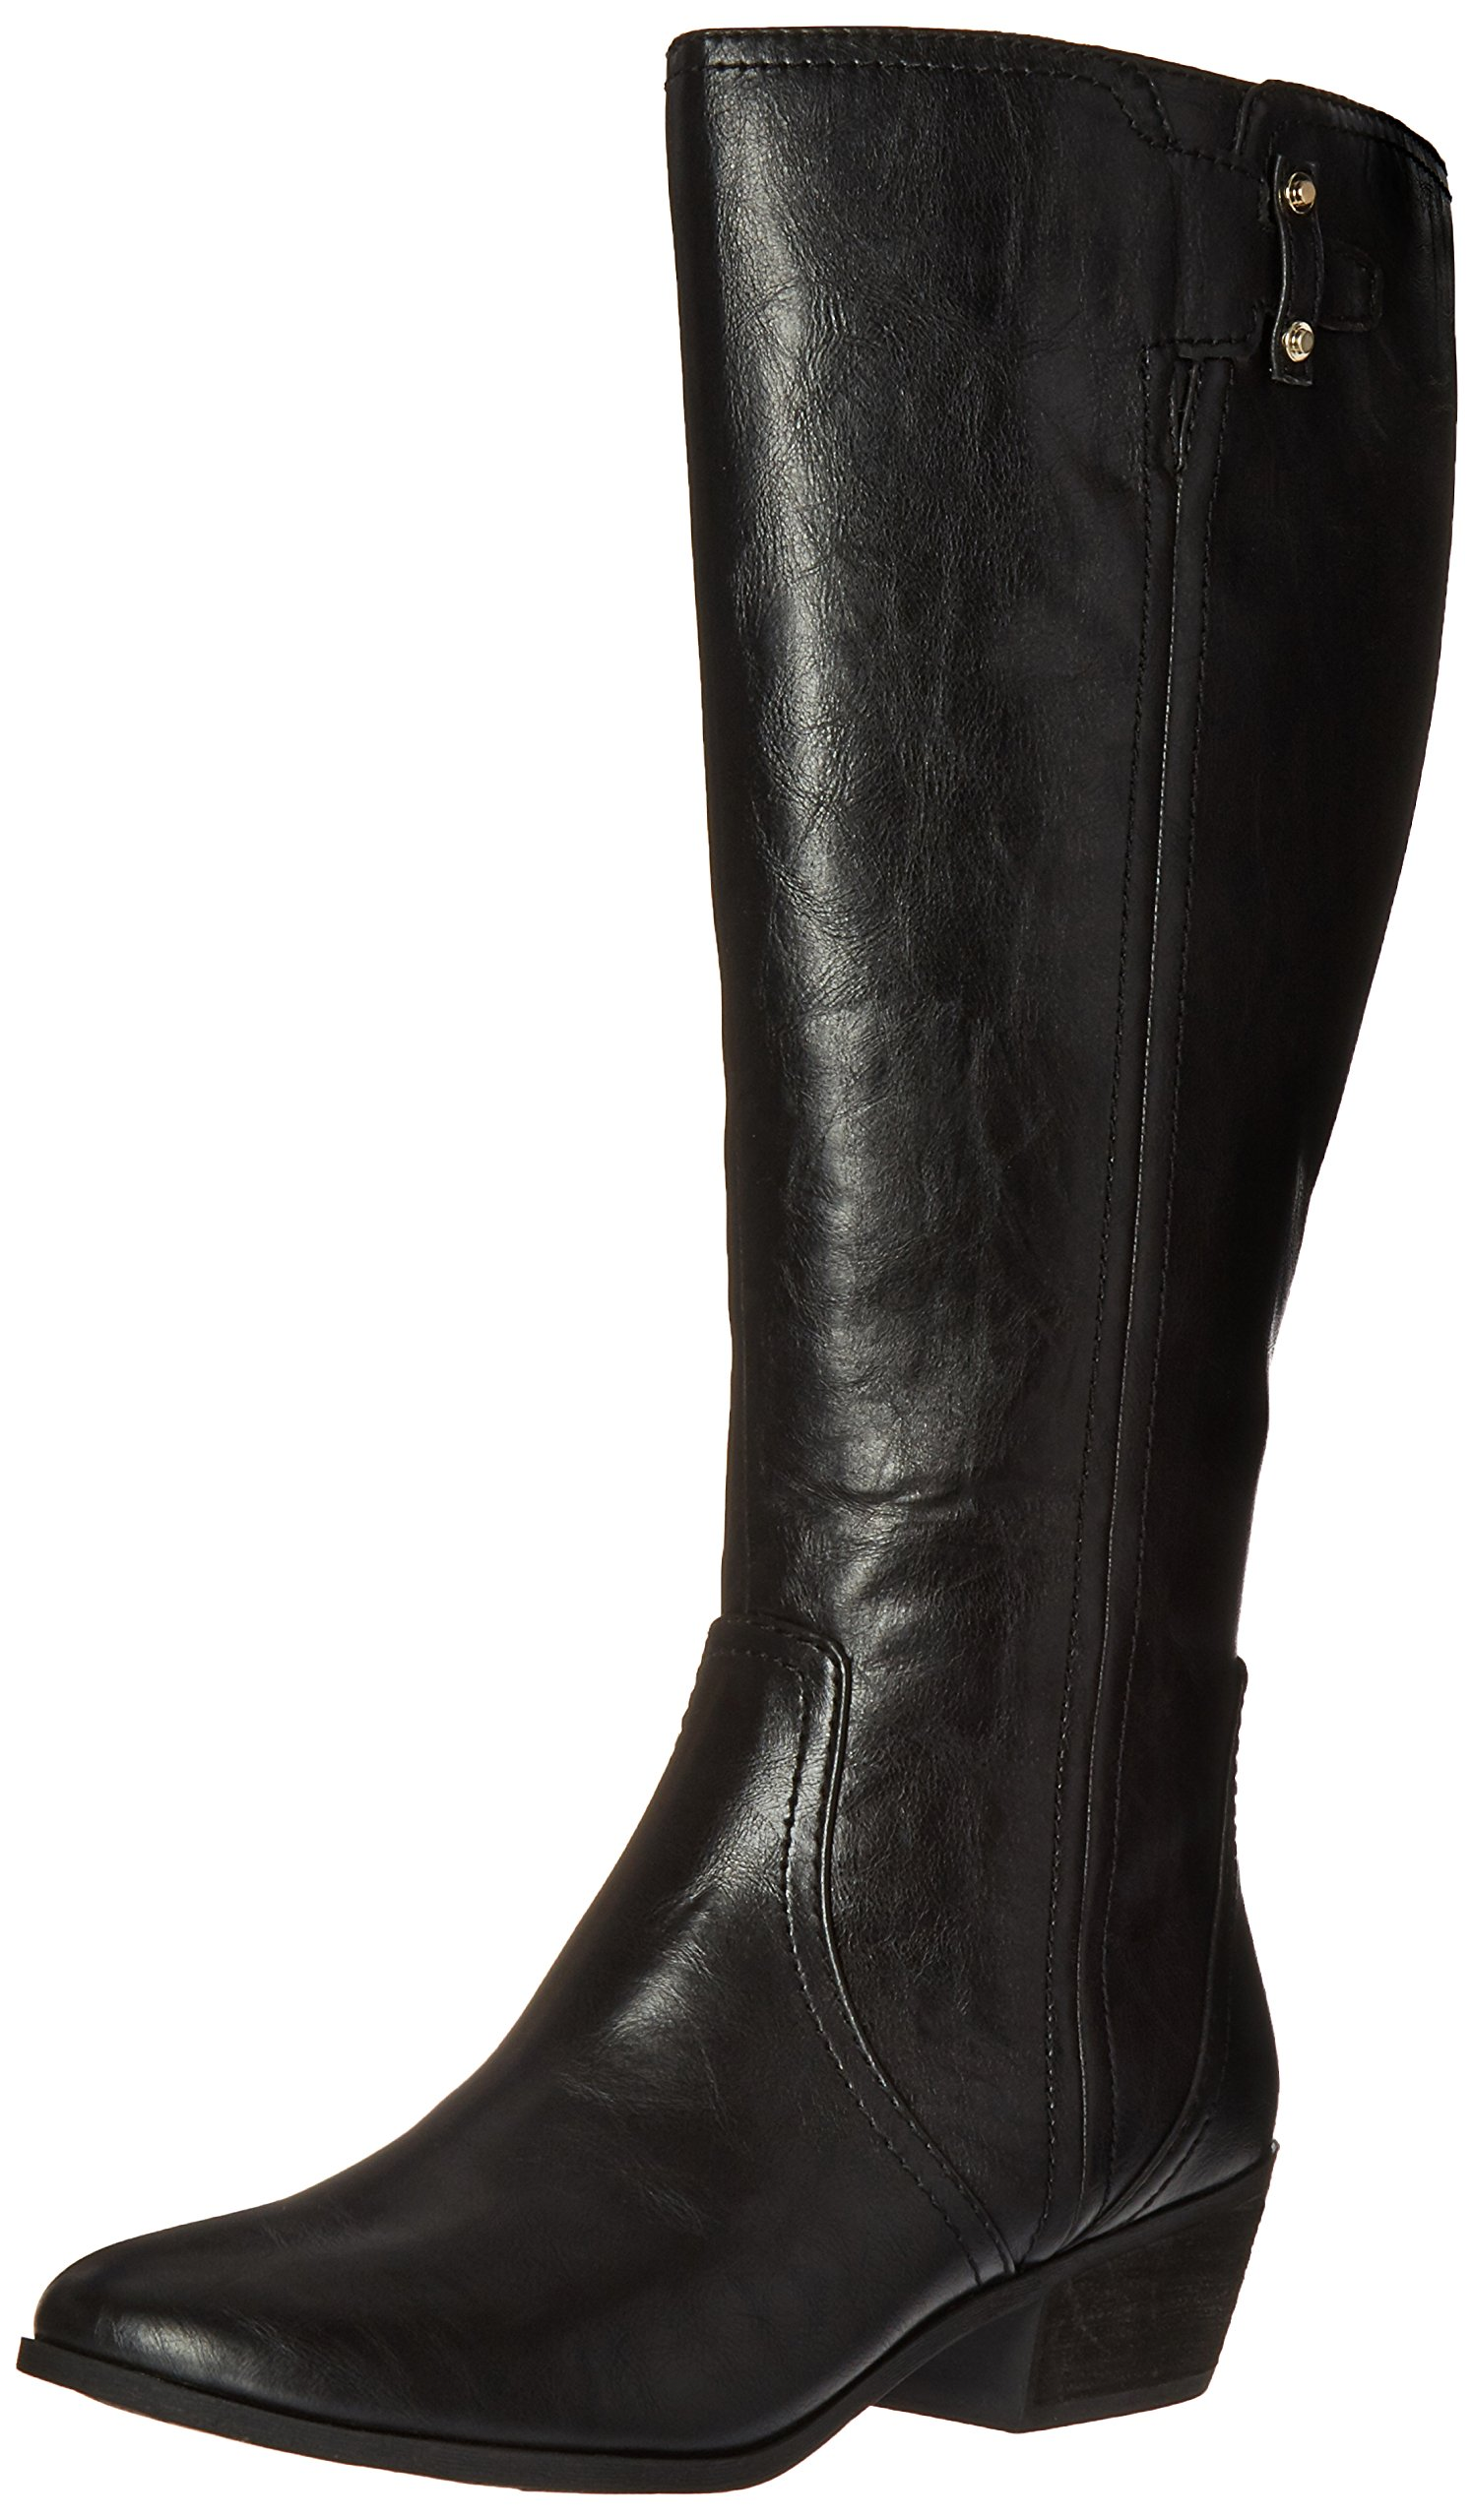 Dr. Scholl's Women's Brilliance Wide Calf Riding Boot, Black, 9.5 M US